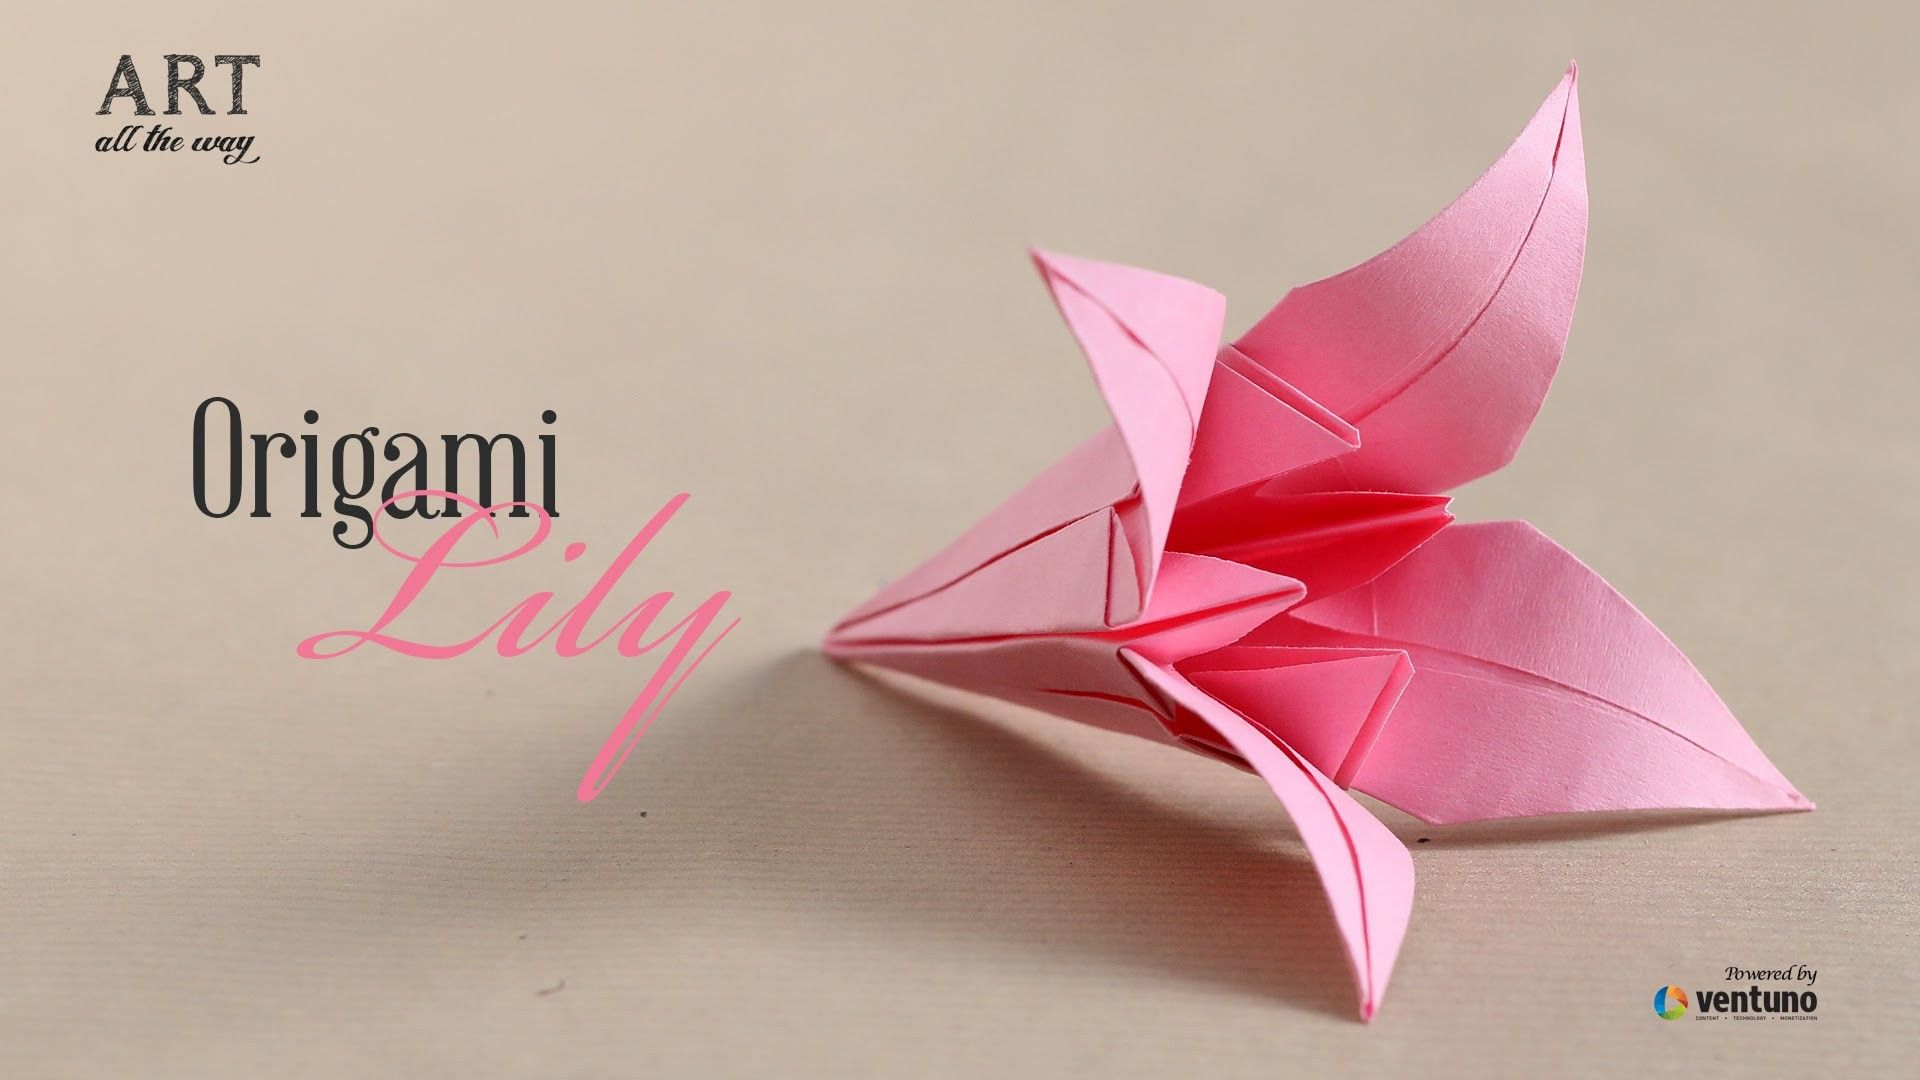 10 Awesome Origami Iris Origami Lily Instructions Image Collections Form 1040 Instructions From Orig Origami Lily Instructions Origami Lily Easy Origami Rose